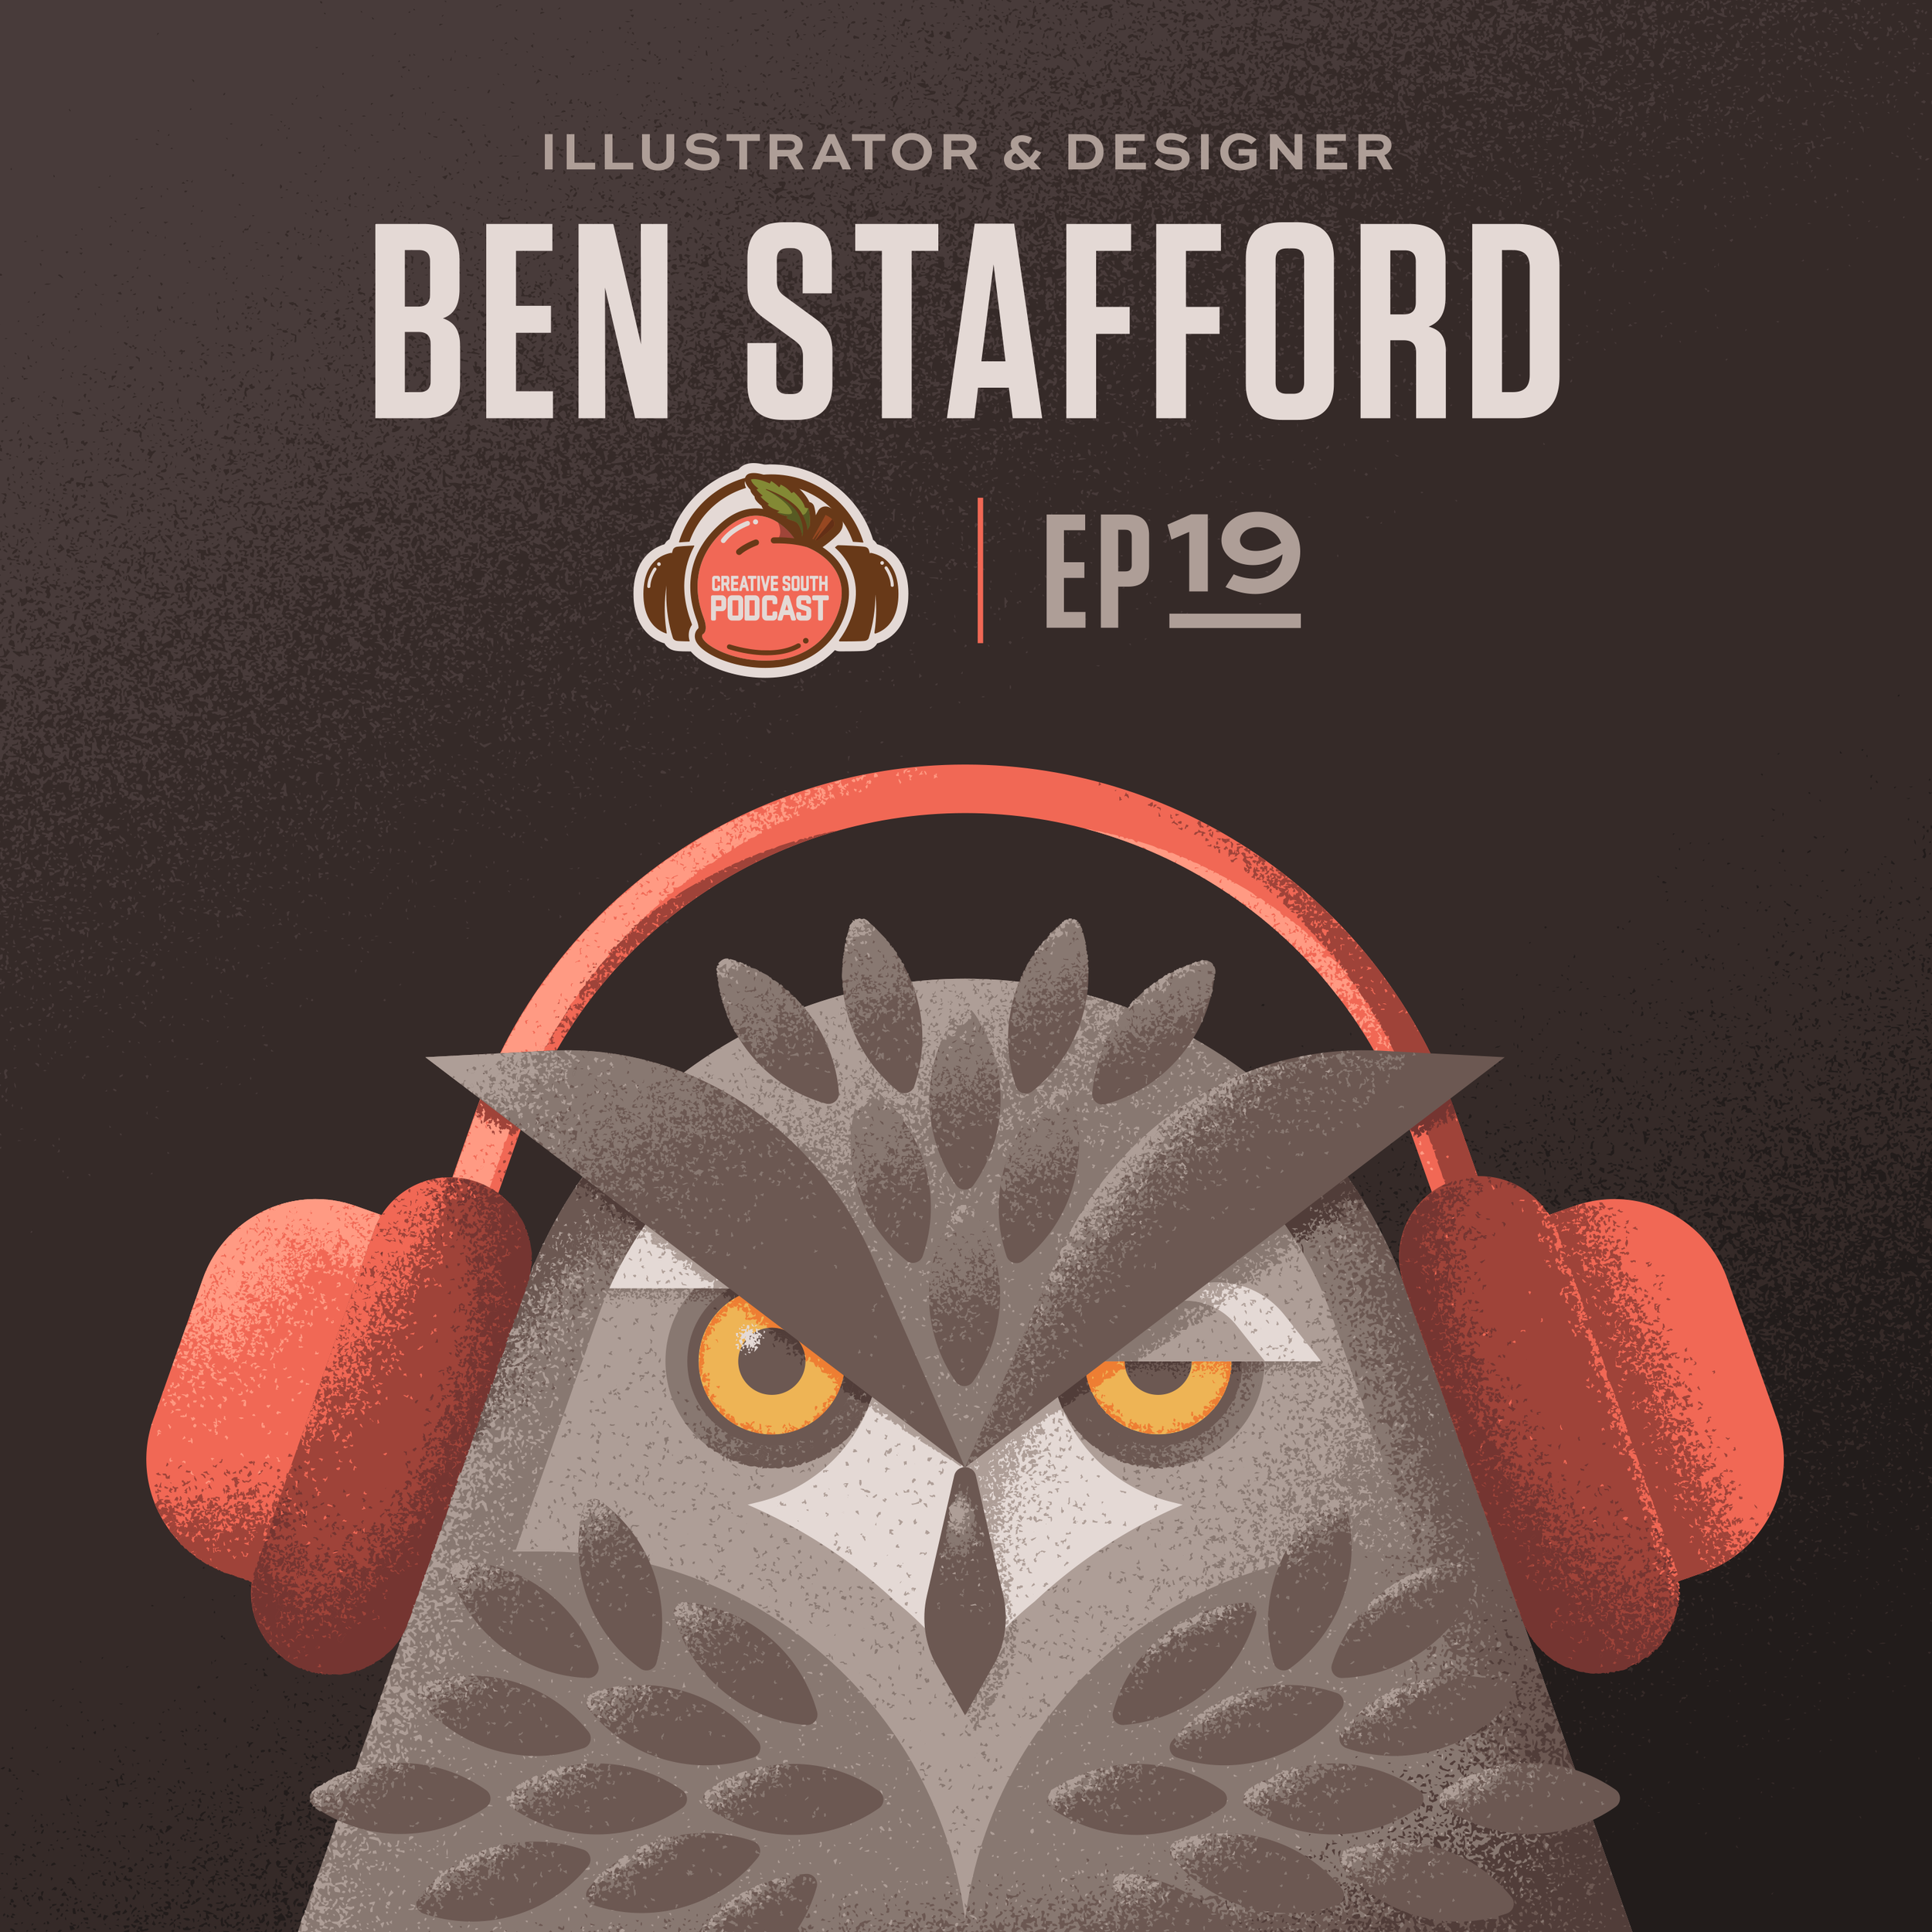 CreativeSouthPodcast_BenStafford.png